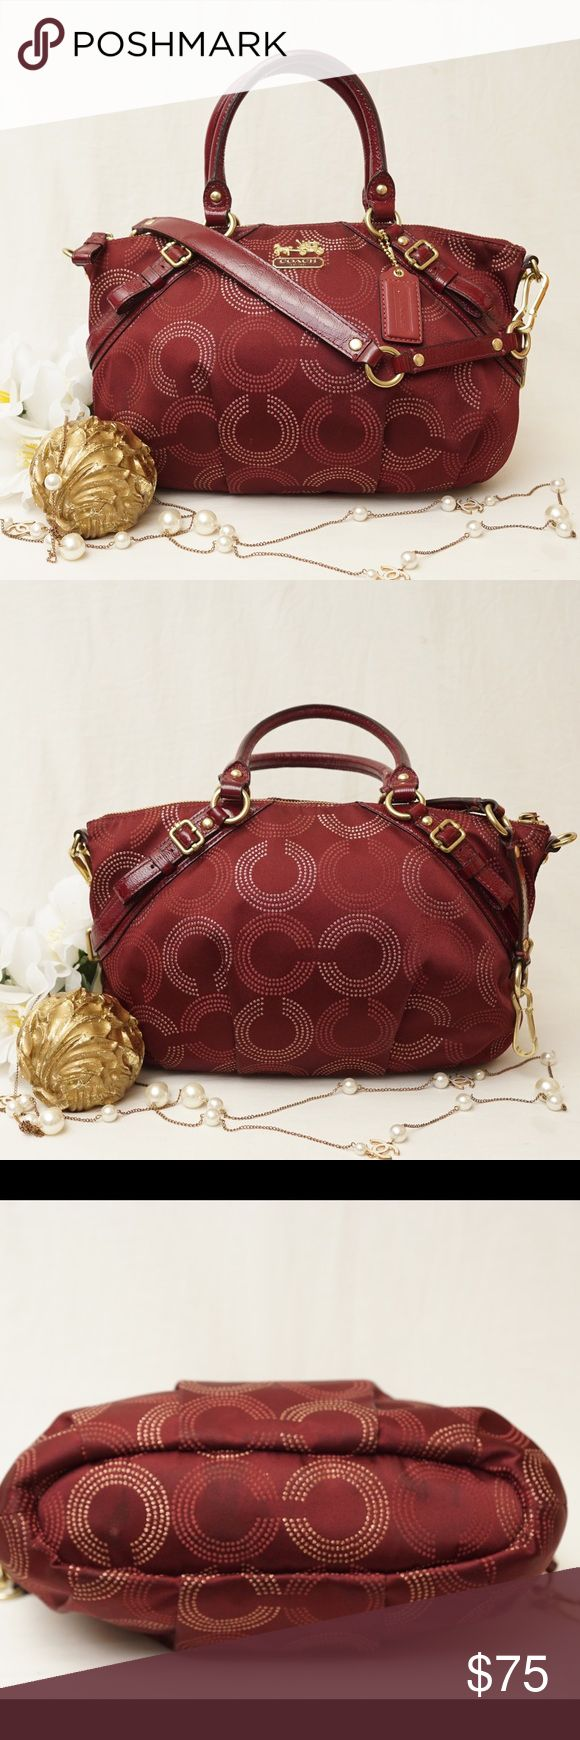 """🌹COACH Madison Op Art Satchel Burgundy Very pretty🎀 Beautifully crafted with high quality fabric and leather edges. No more on sale.  Gently used condition. Has a few stains exterior bottom and front and interior sides as pictured. Size 14""""x8,5""""x4"""". Pet/smoke free home.  AUTHENTIC❣️FAST SHIPPING! Please see my other listings! Coach Bags Satchels"""